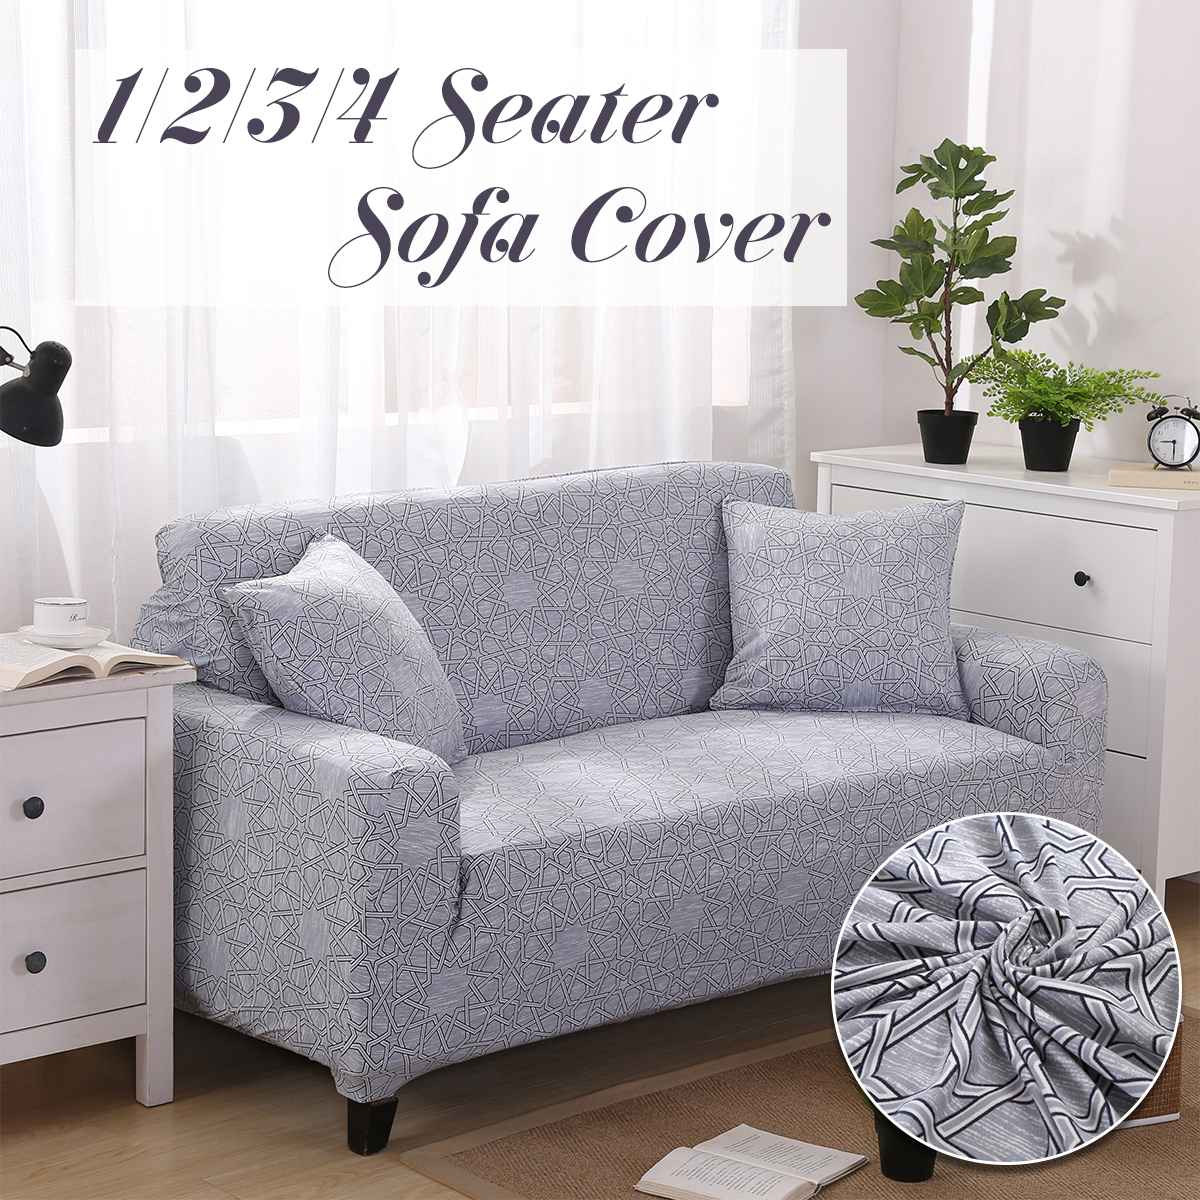 Puzzle Star Grey 1 2 3 4 Seater Home Soft Elastic Sofa